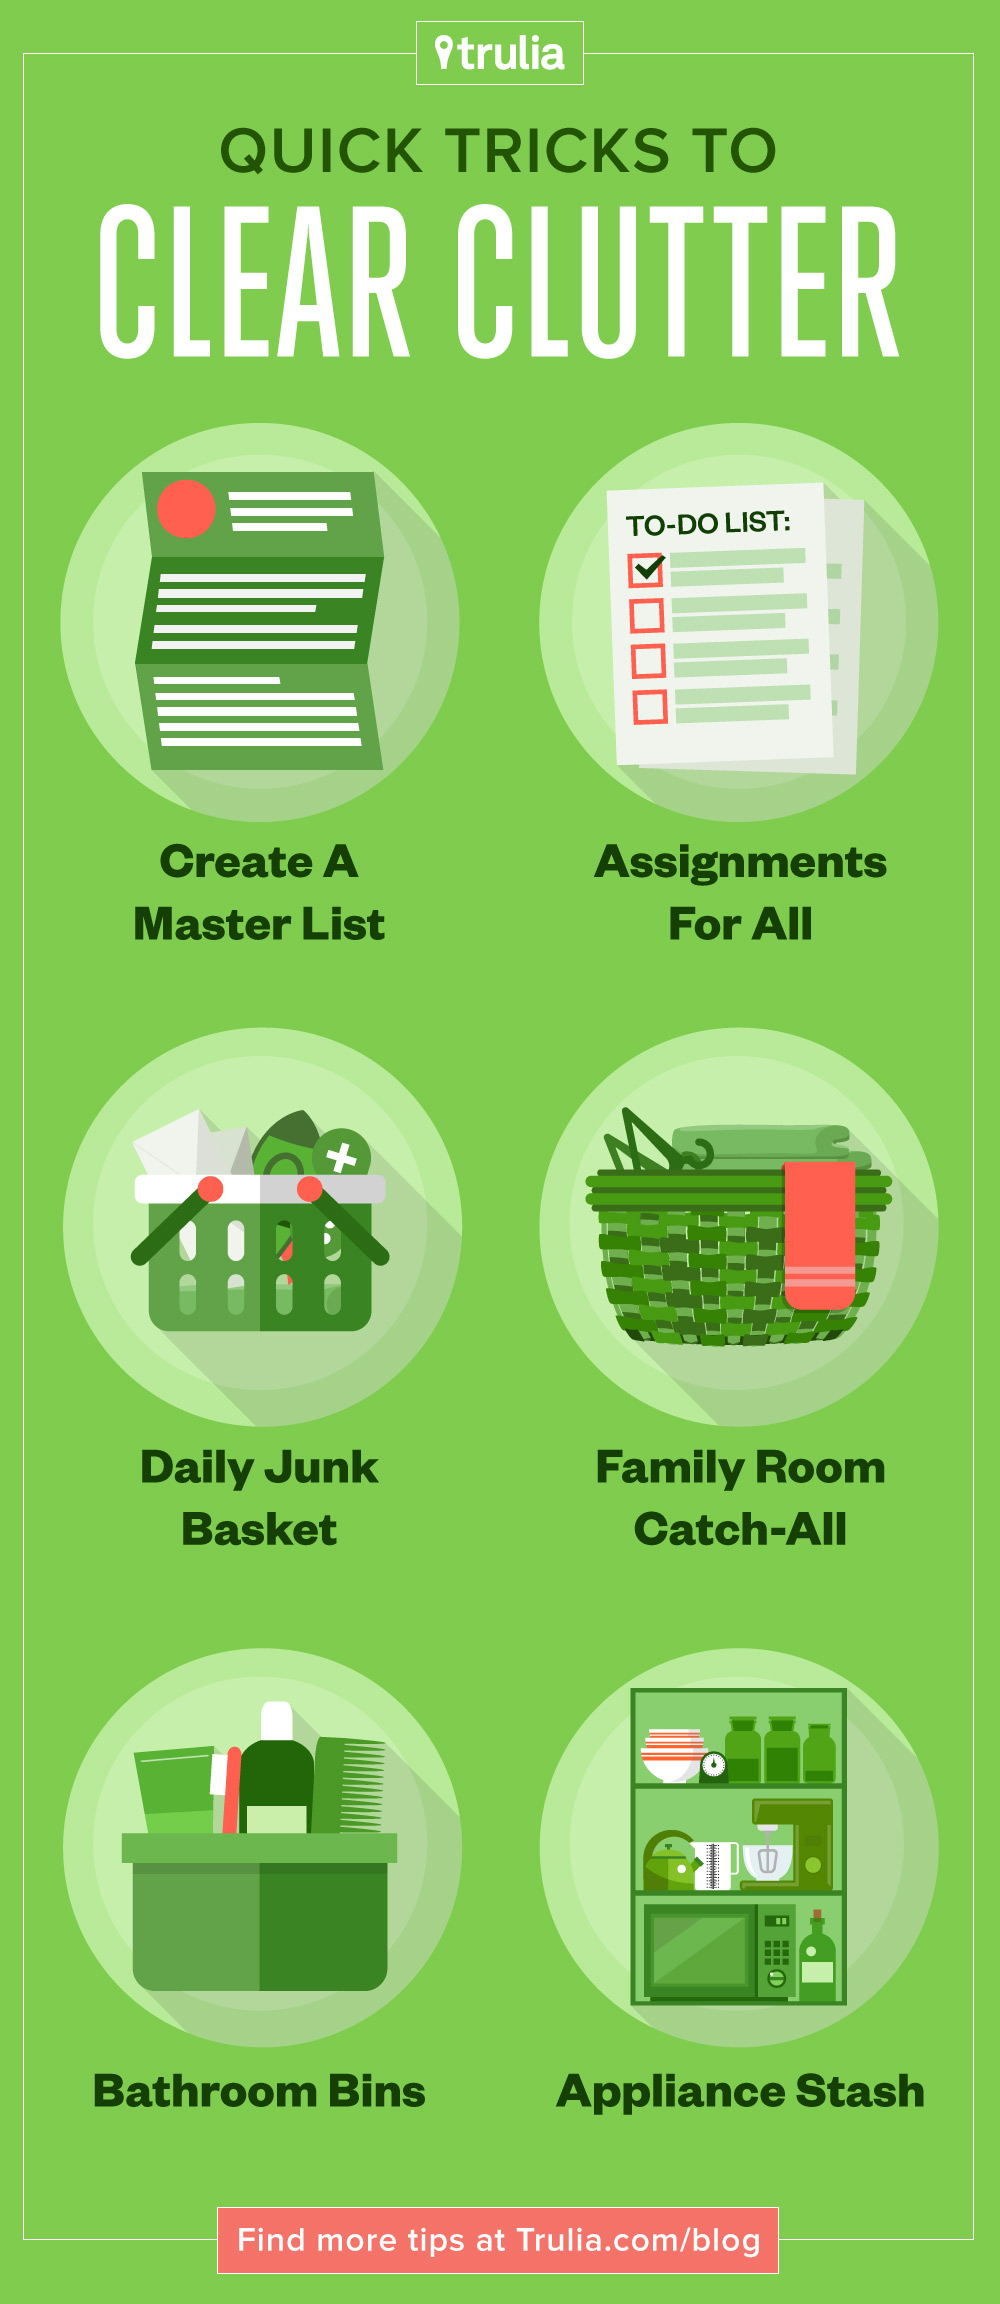 June2015-Trulia-8-Quick-Tricks-To-Clear-Clutter-Pinterest